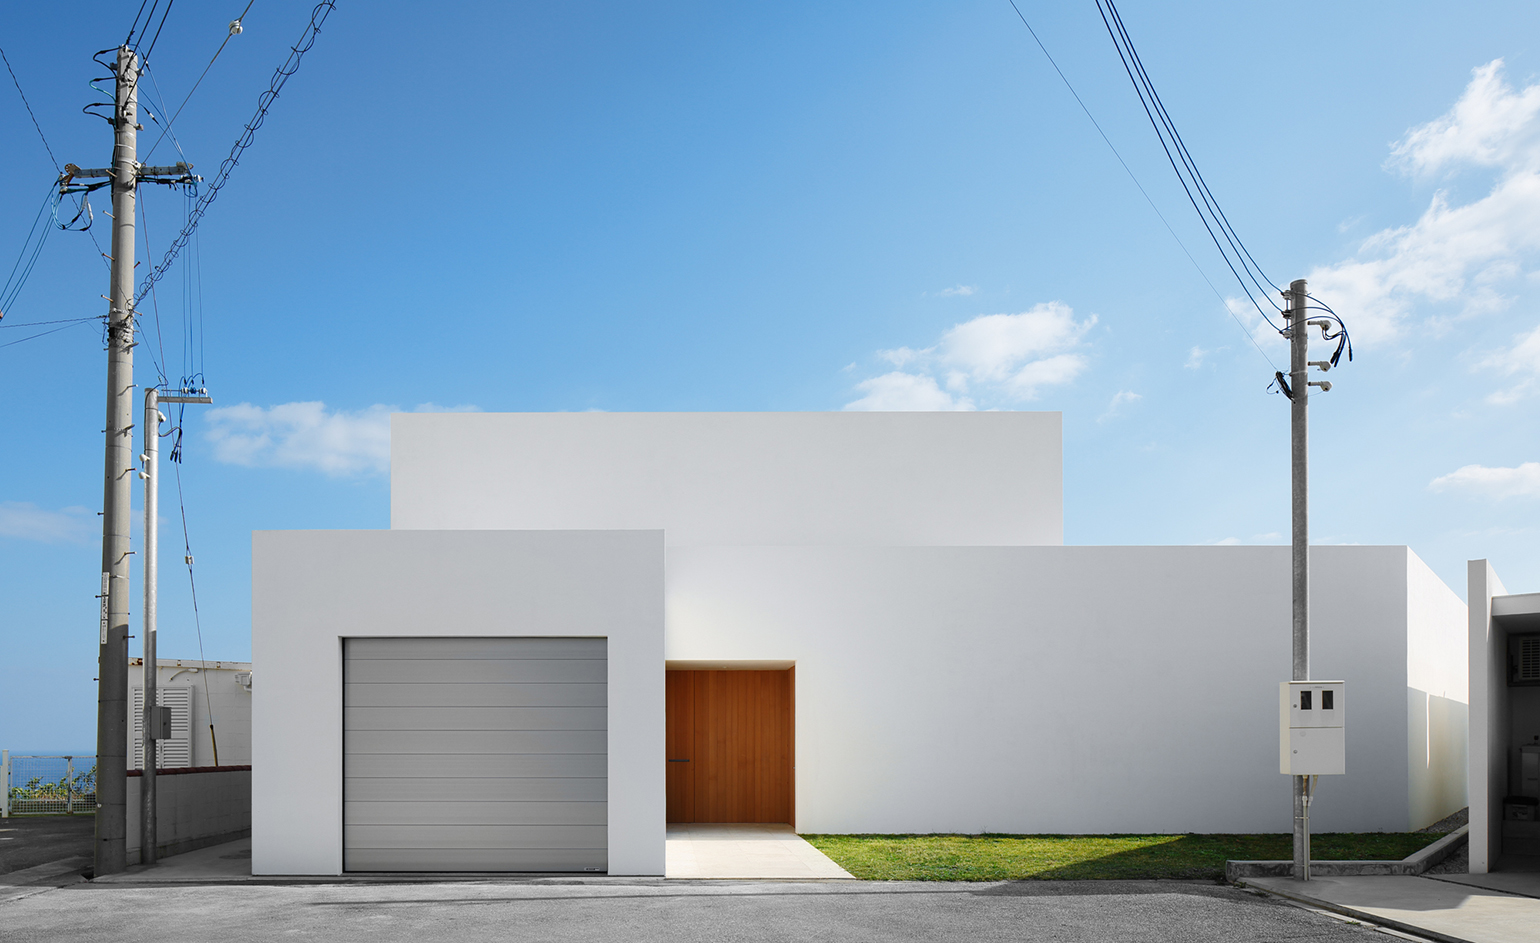 John pawson unveils minimalist japanese home in okinawa for Minimalist japanese homes